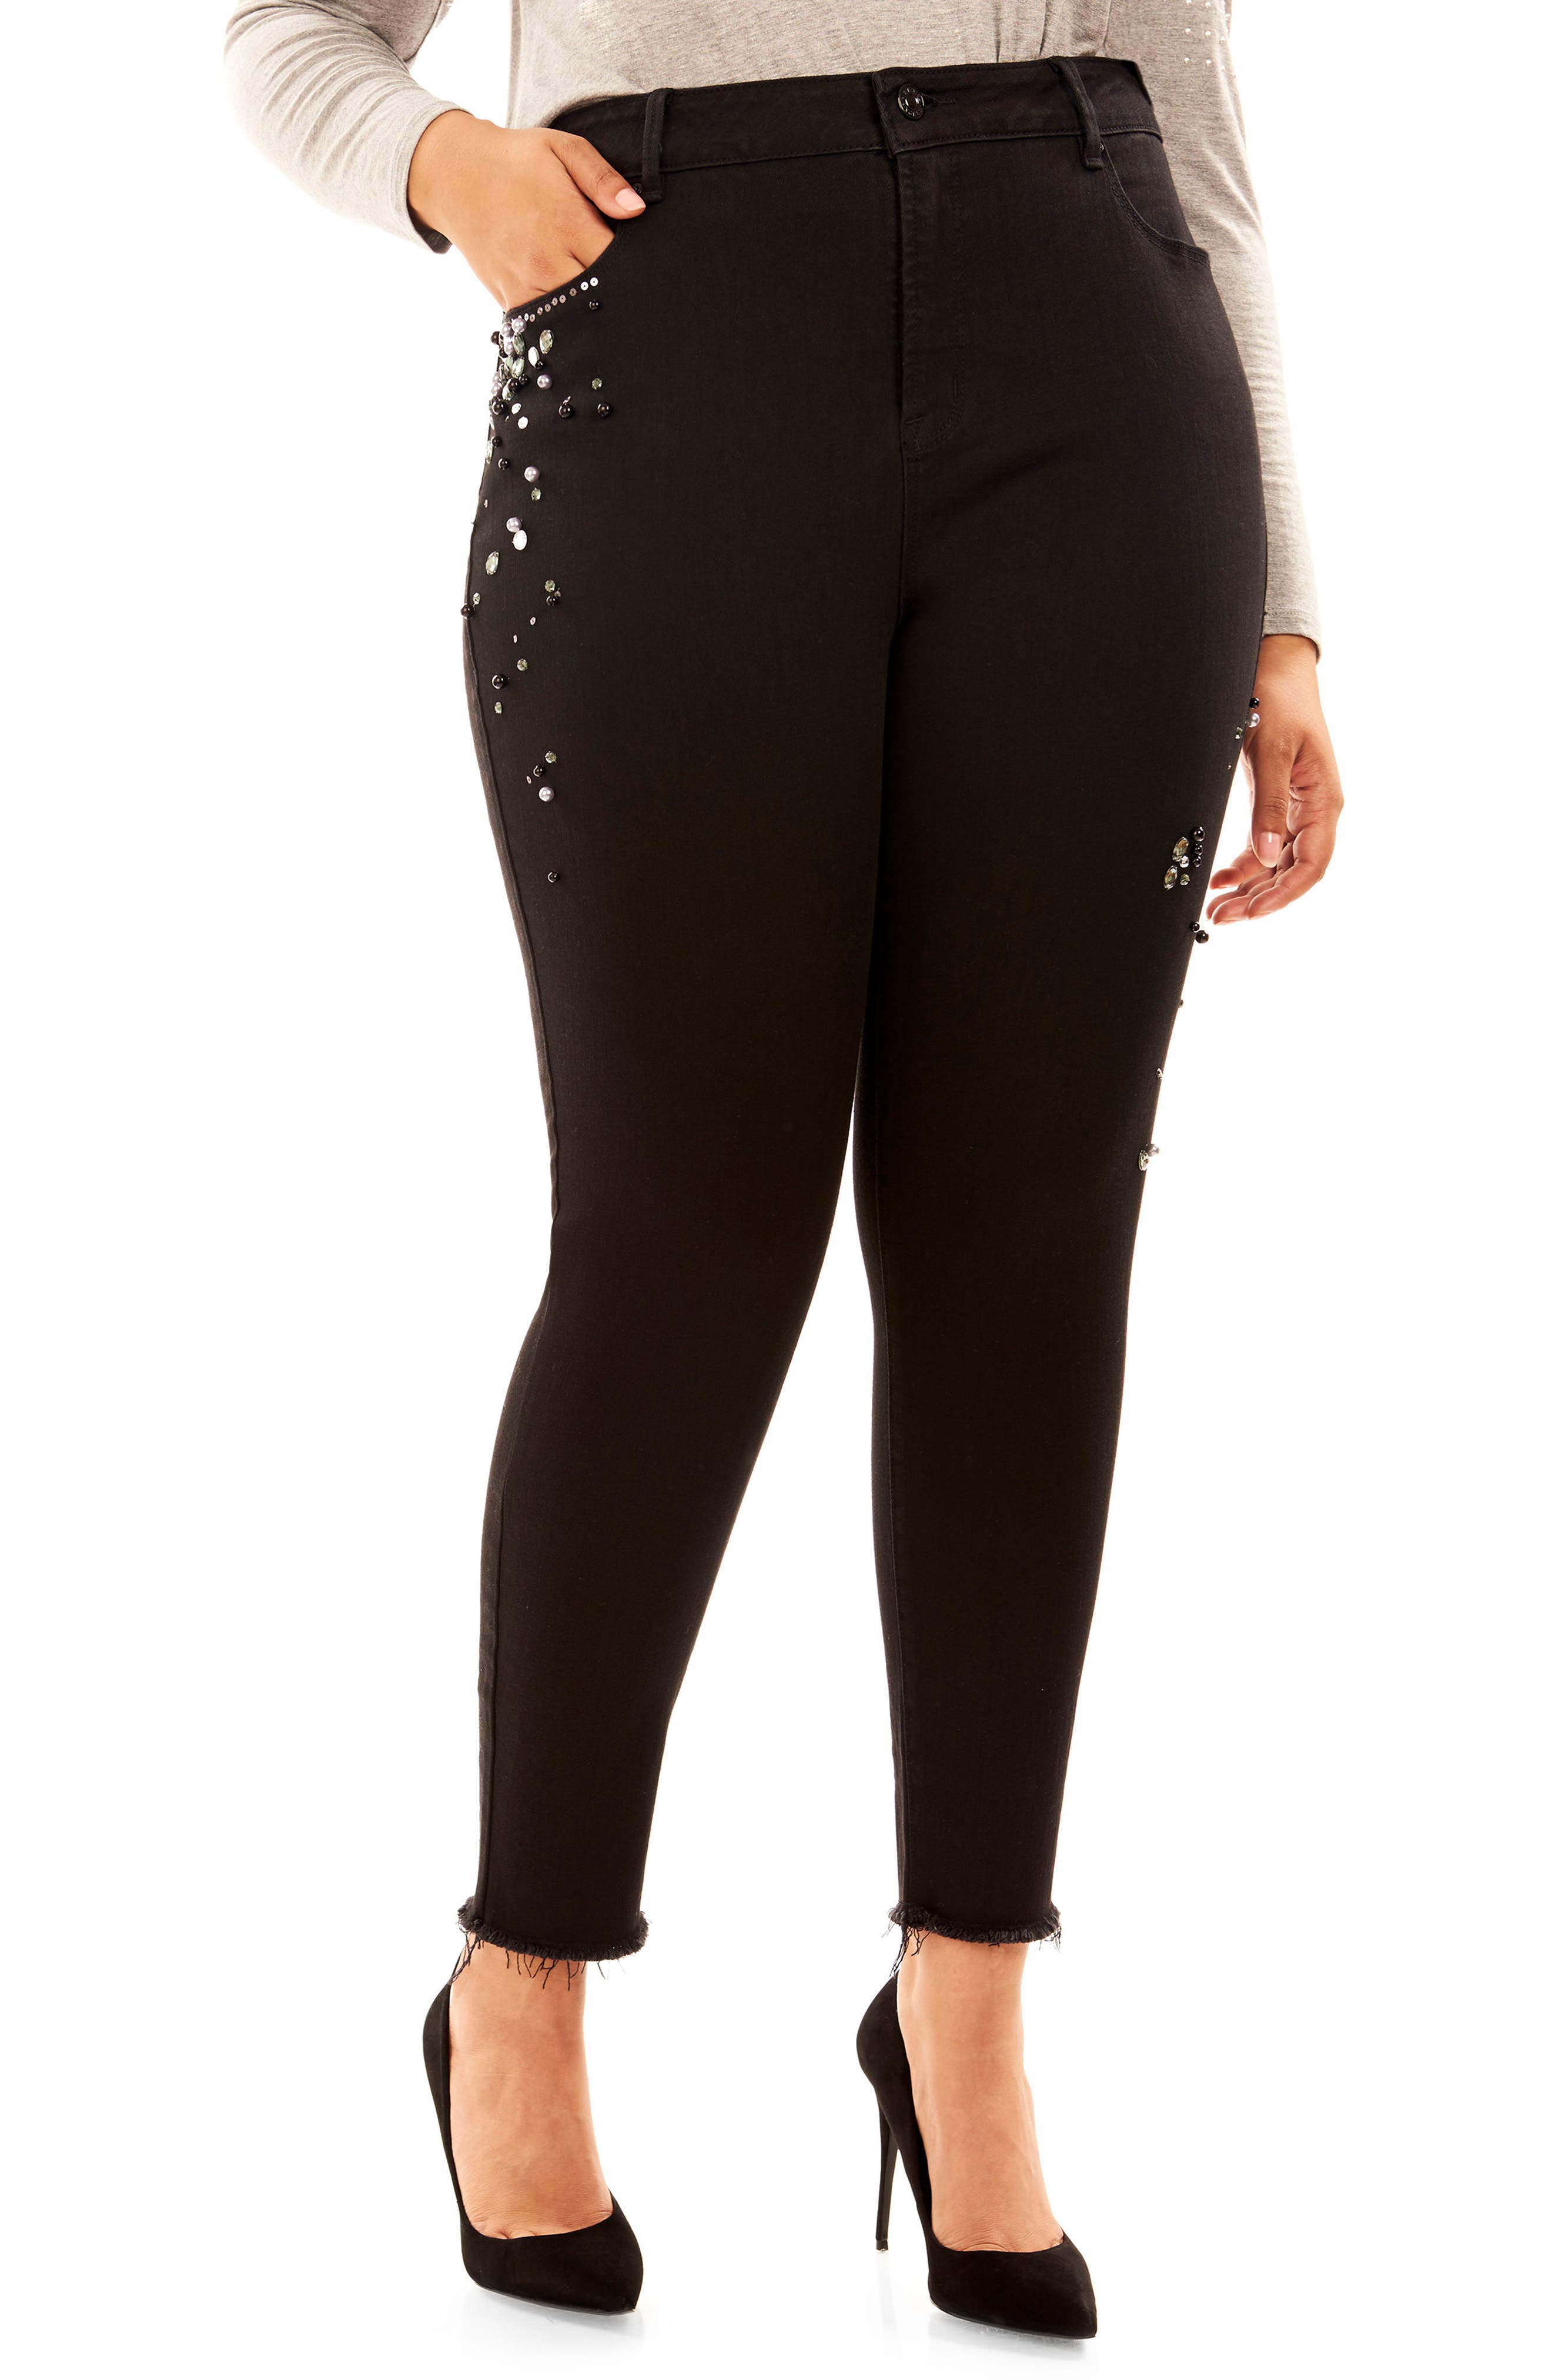 Alternate Image 1 Selected - Rebel Wilson x Angels The Pin Up Crop Super Skinny Jeans (Plus Size)